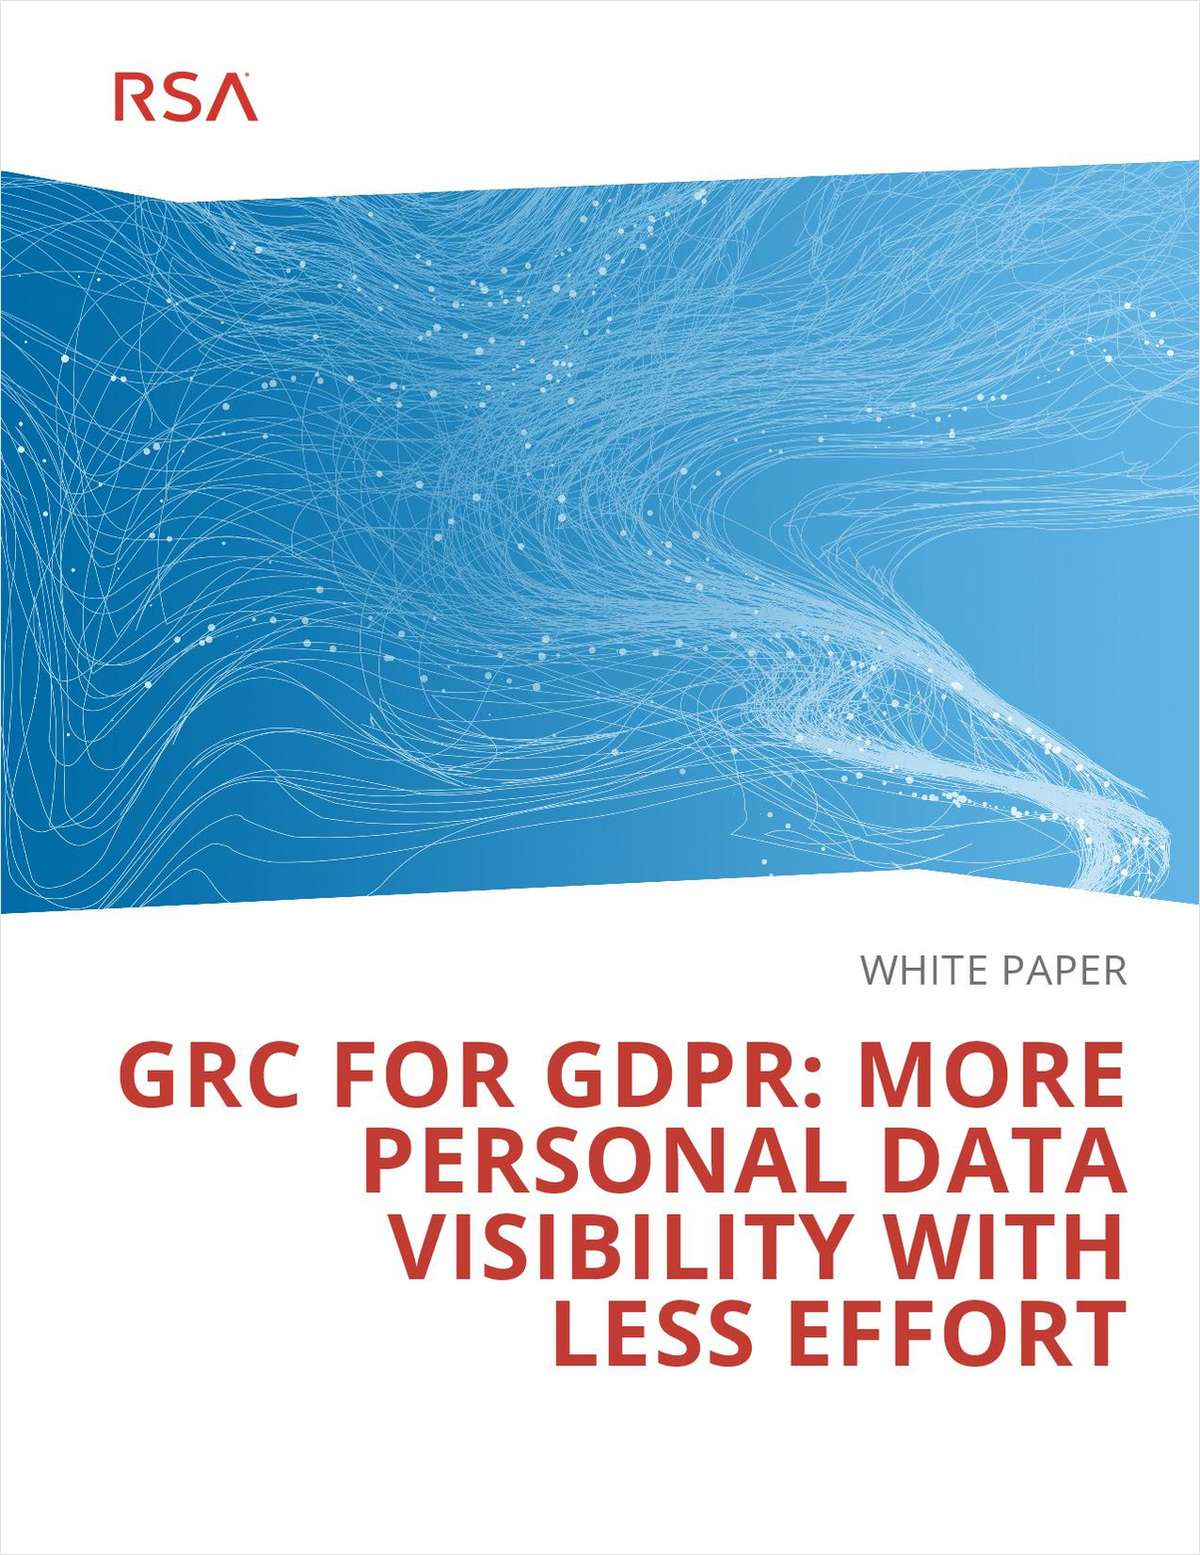 GRC for GDPR: More Personal Data Visibility with Less Effort